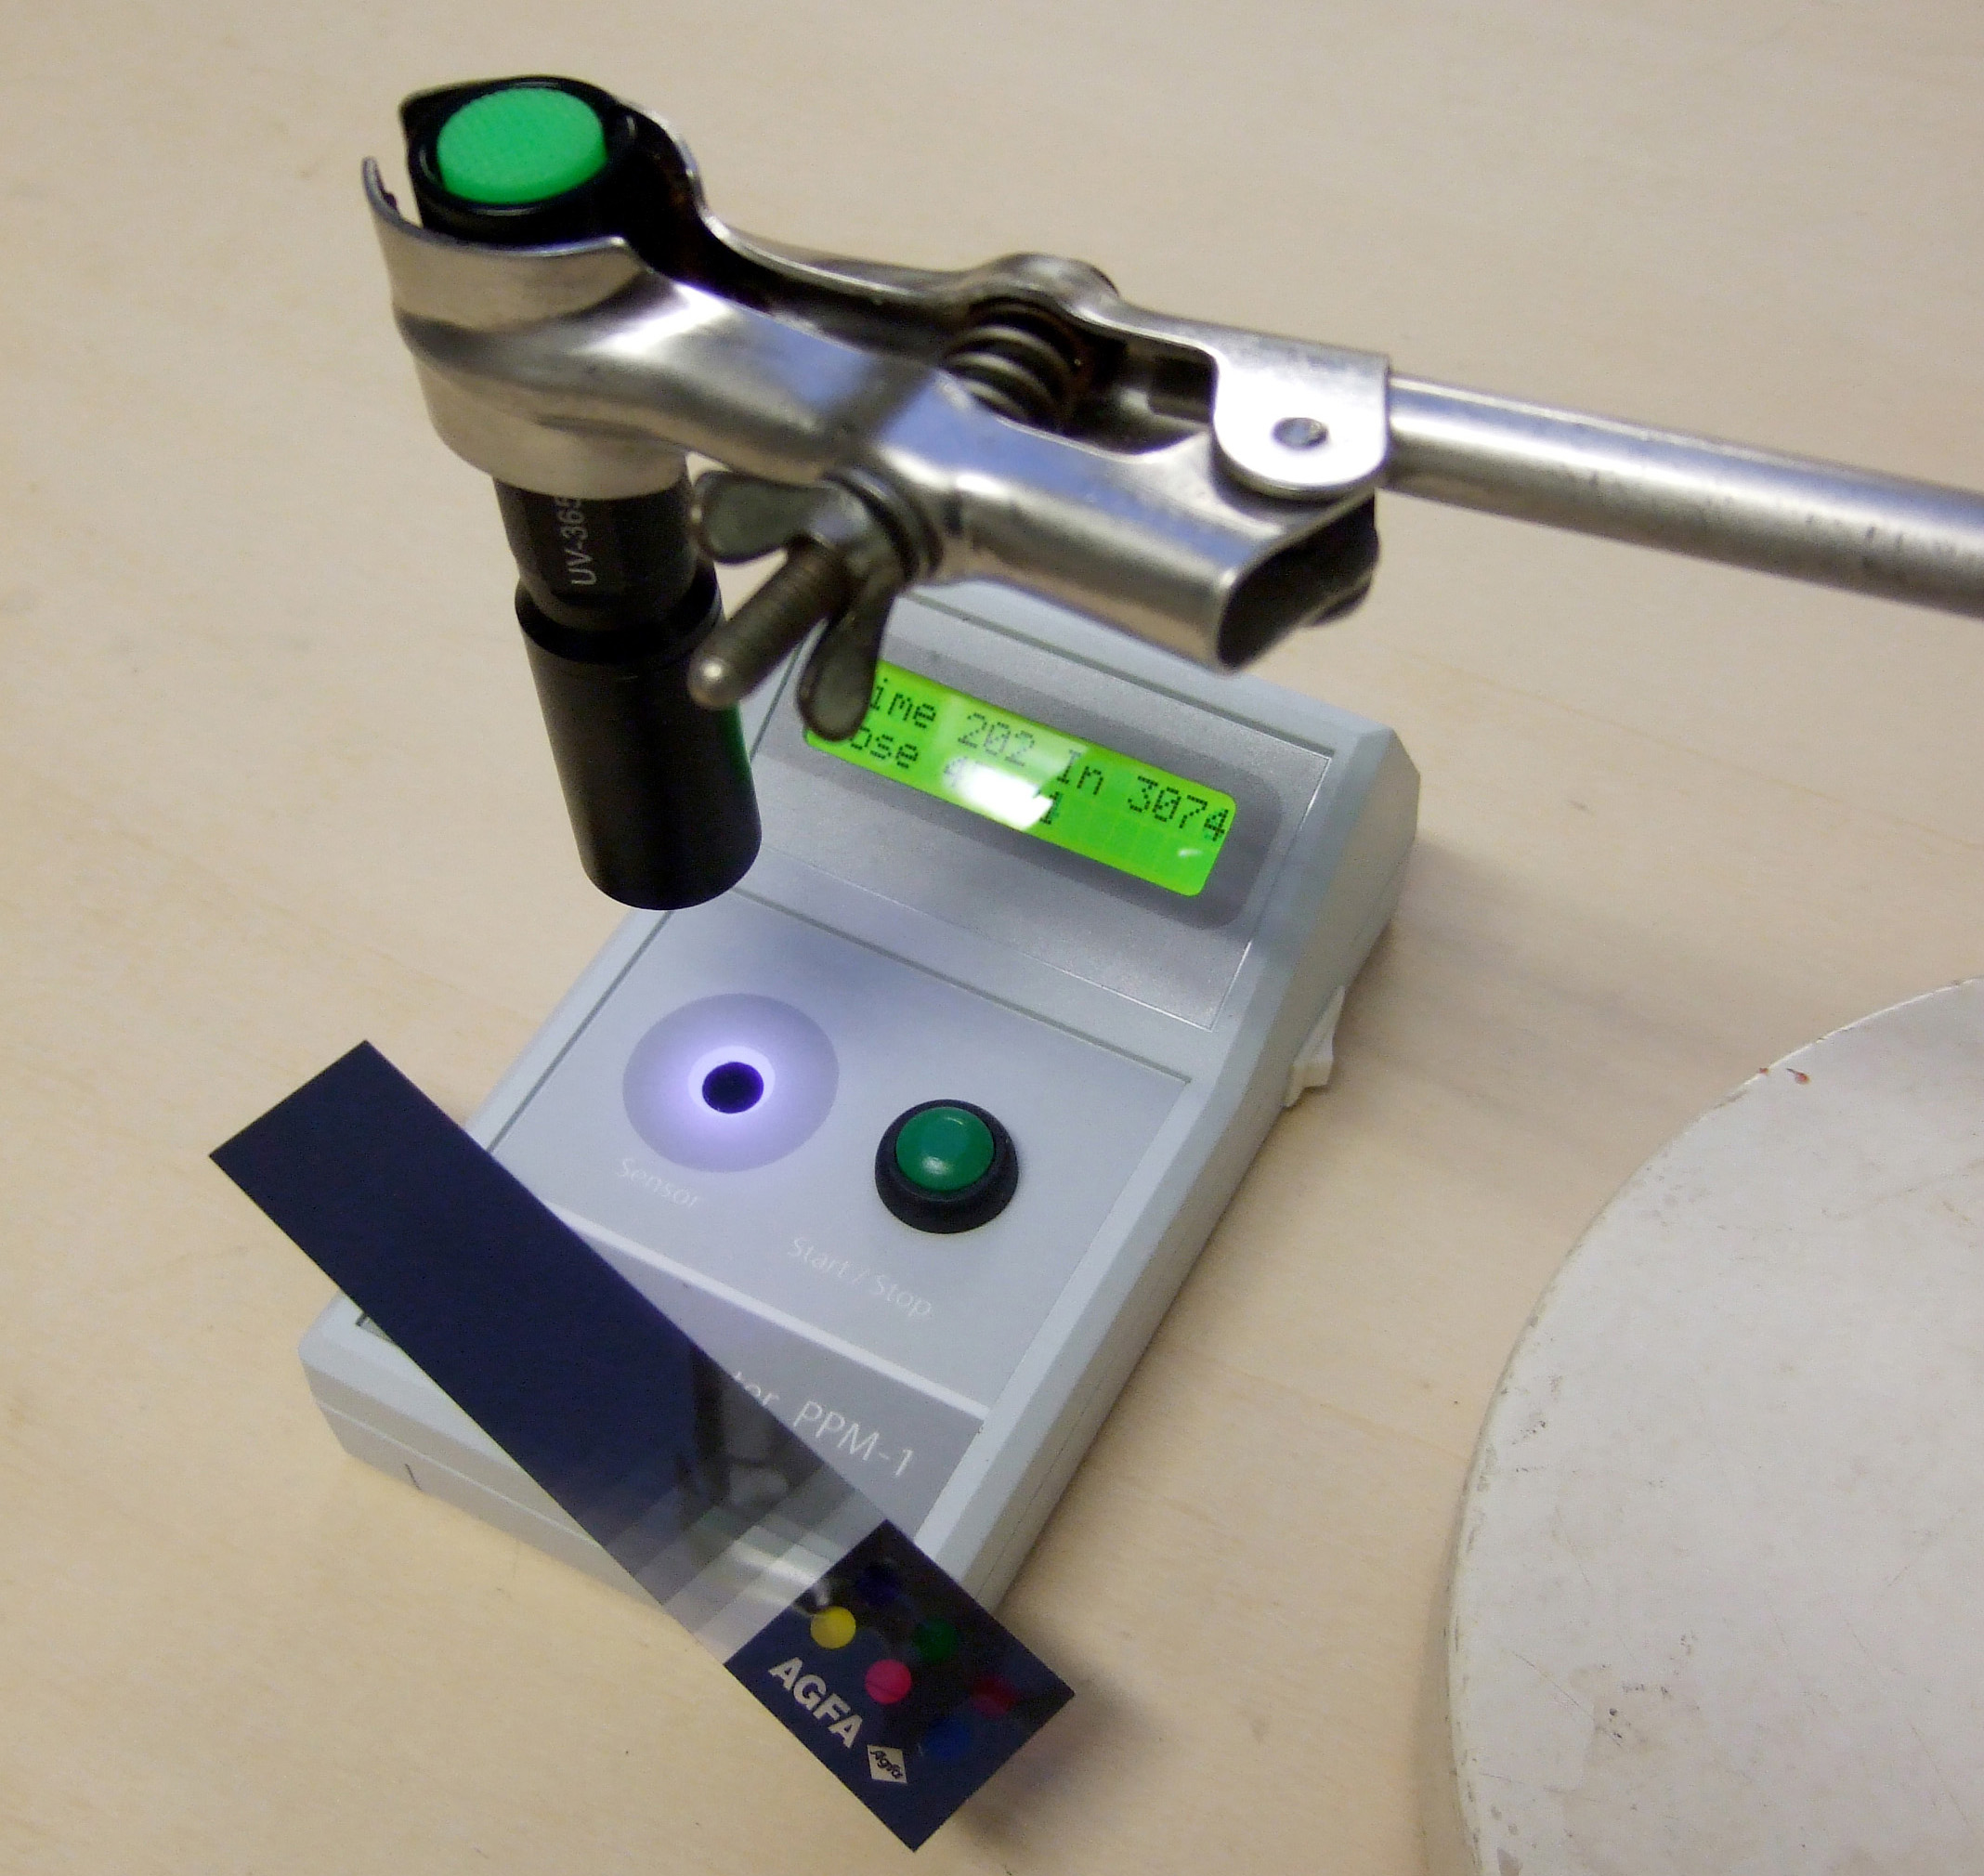 PPM-1 used as a UV densitometer for negatives, with a 365nm LED source - courtesy of    Kees Brandenburg   , Netherlands